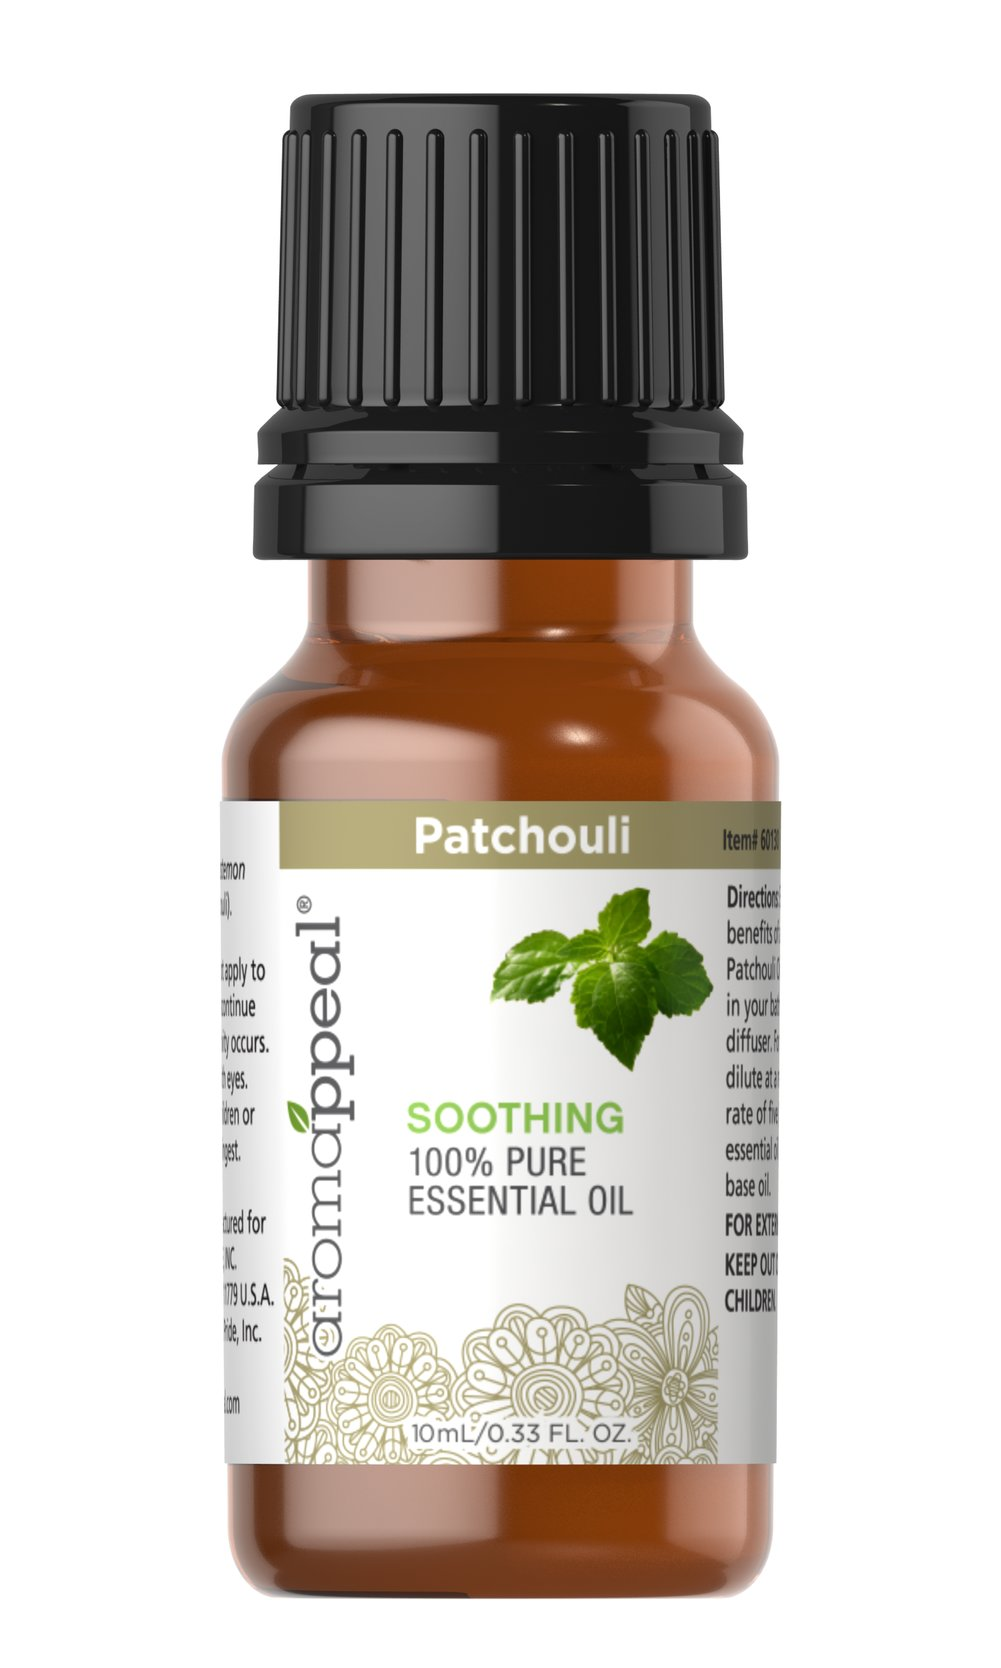 Patchouli 100% Pure Essential Oil  10 ml Oil  $16.99